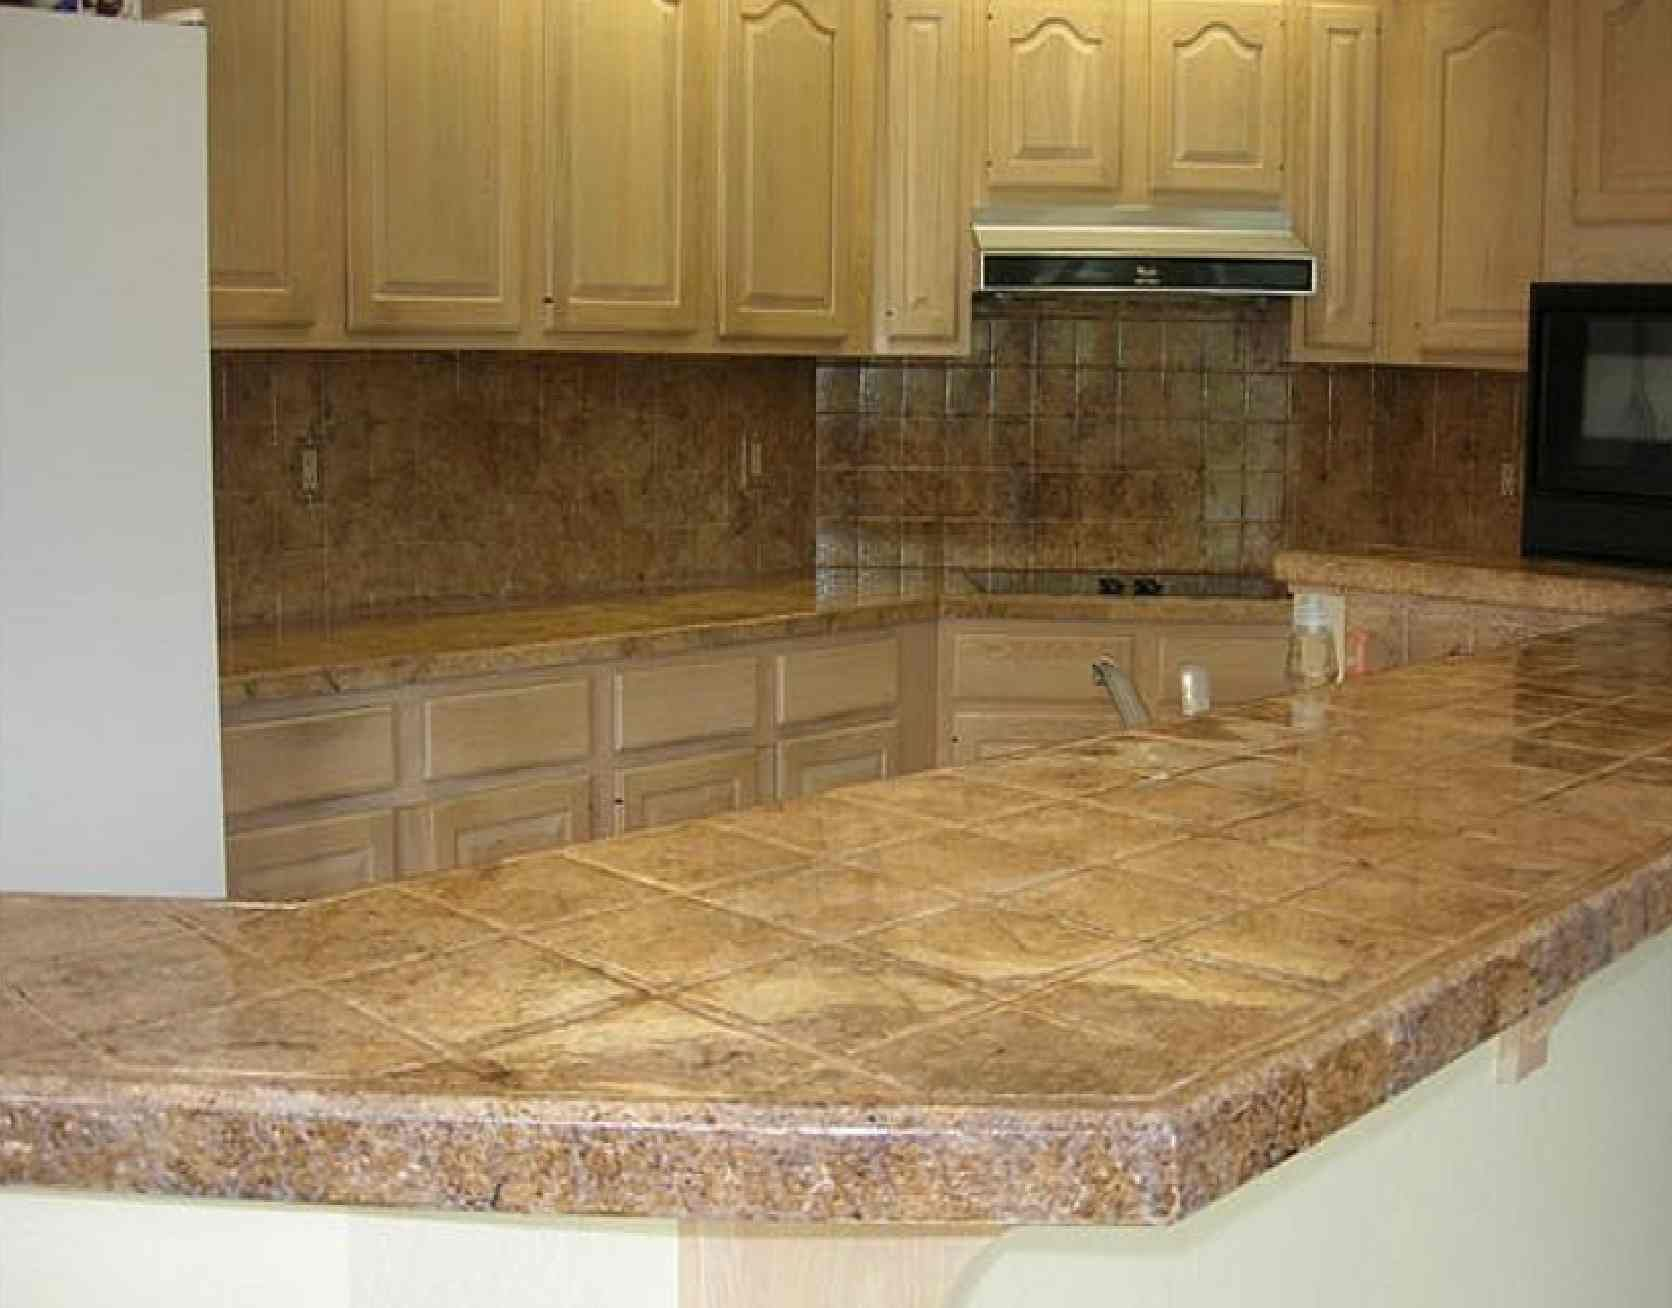 Tiled Kitchens Porcelain Tile Backsplash Gallery Just Finished Up A Ceramic